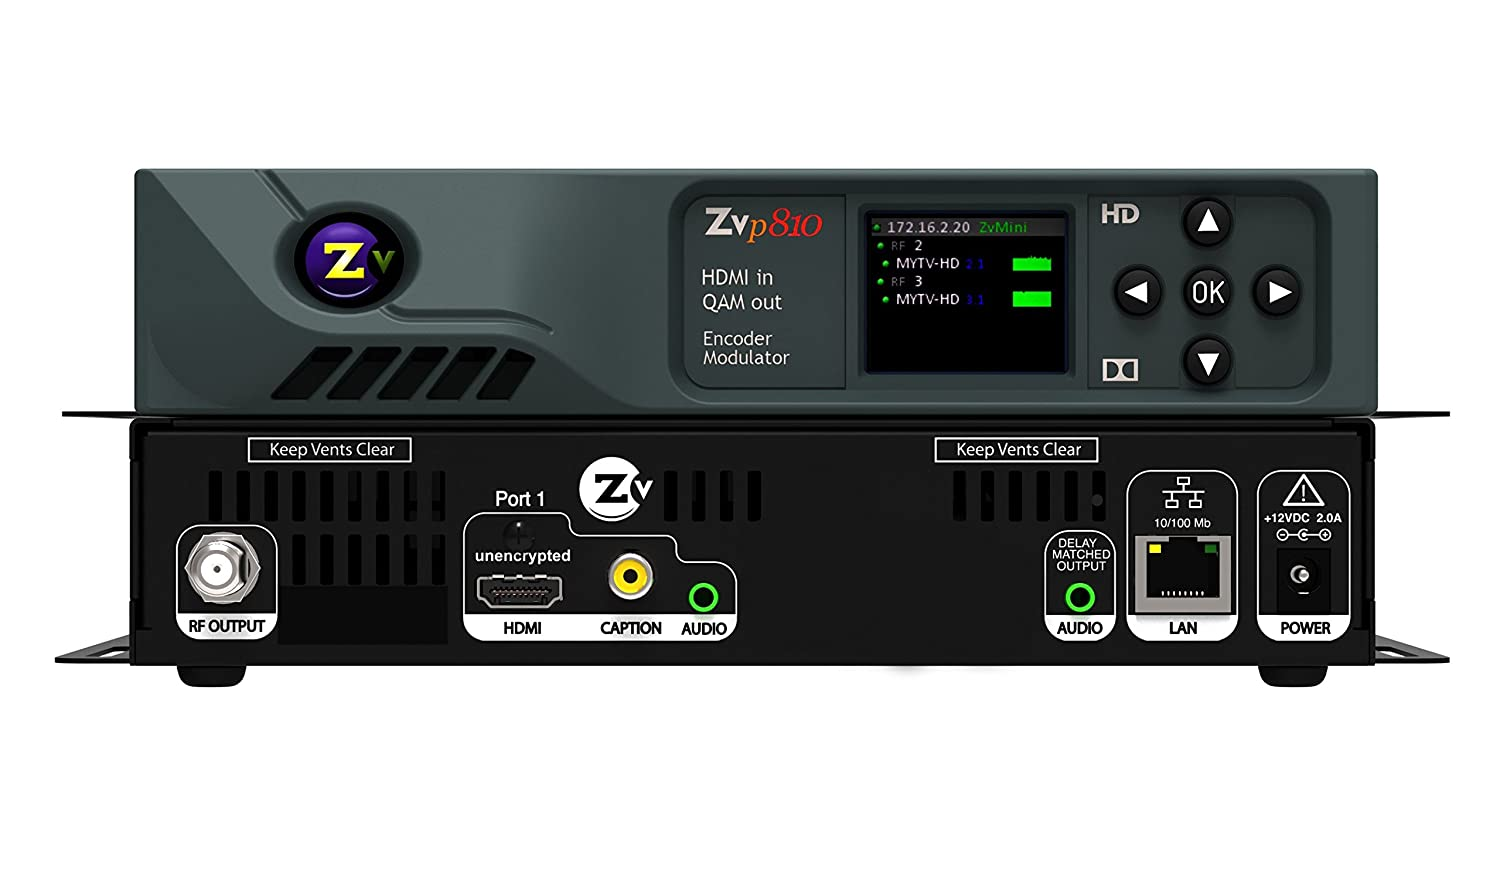 71WGoeR4 DL._SL1500_ amazon com zeevee zvpro810 hd video distribution qam modulator  at bayanpartner.co